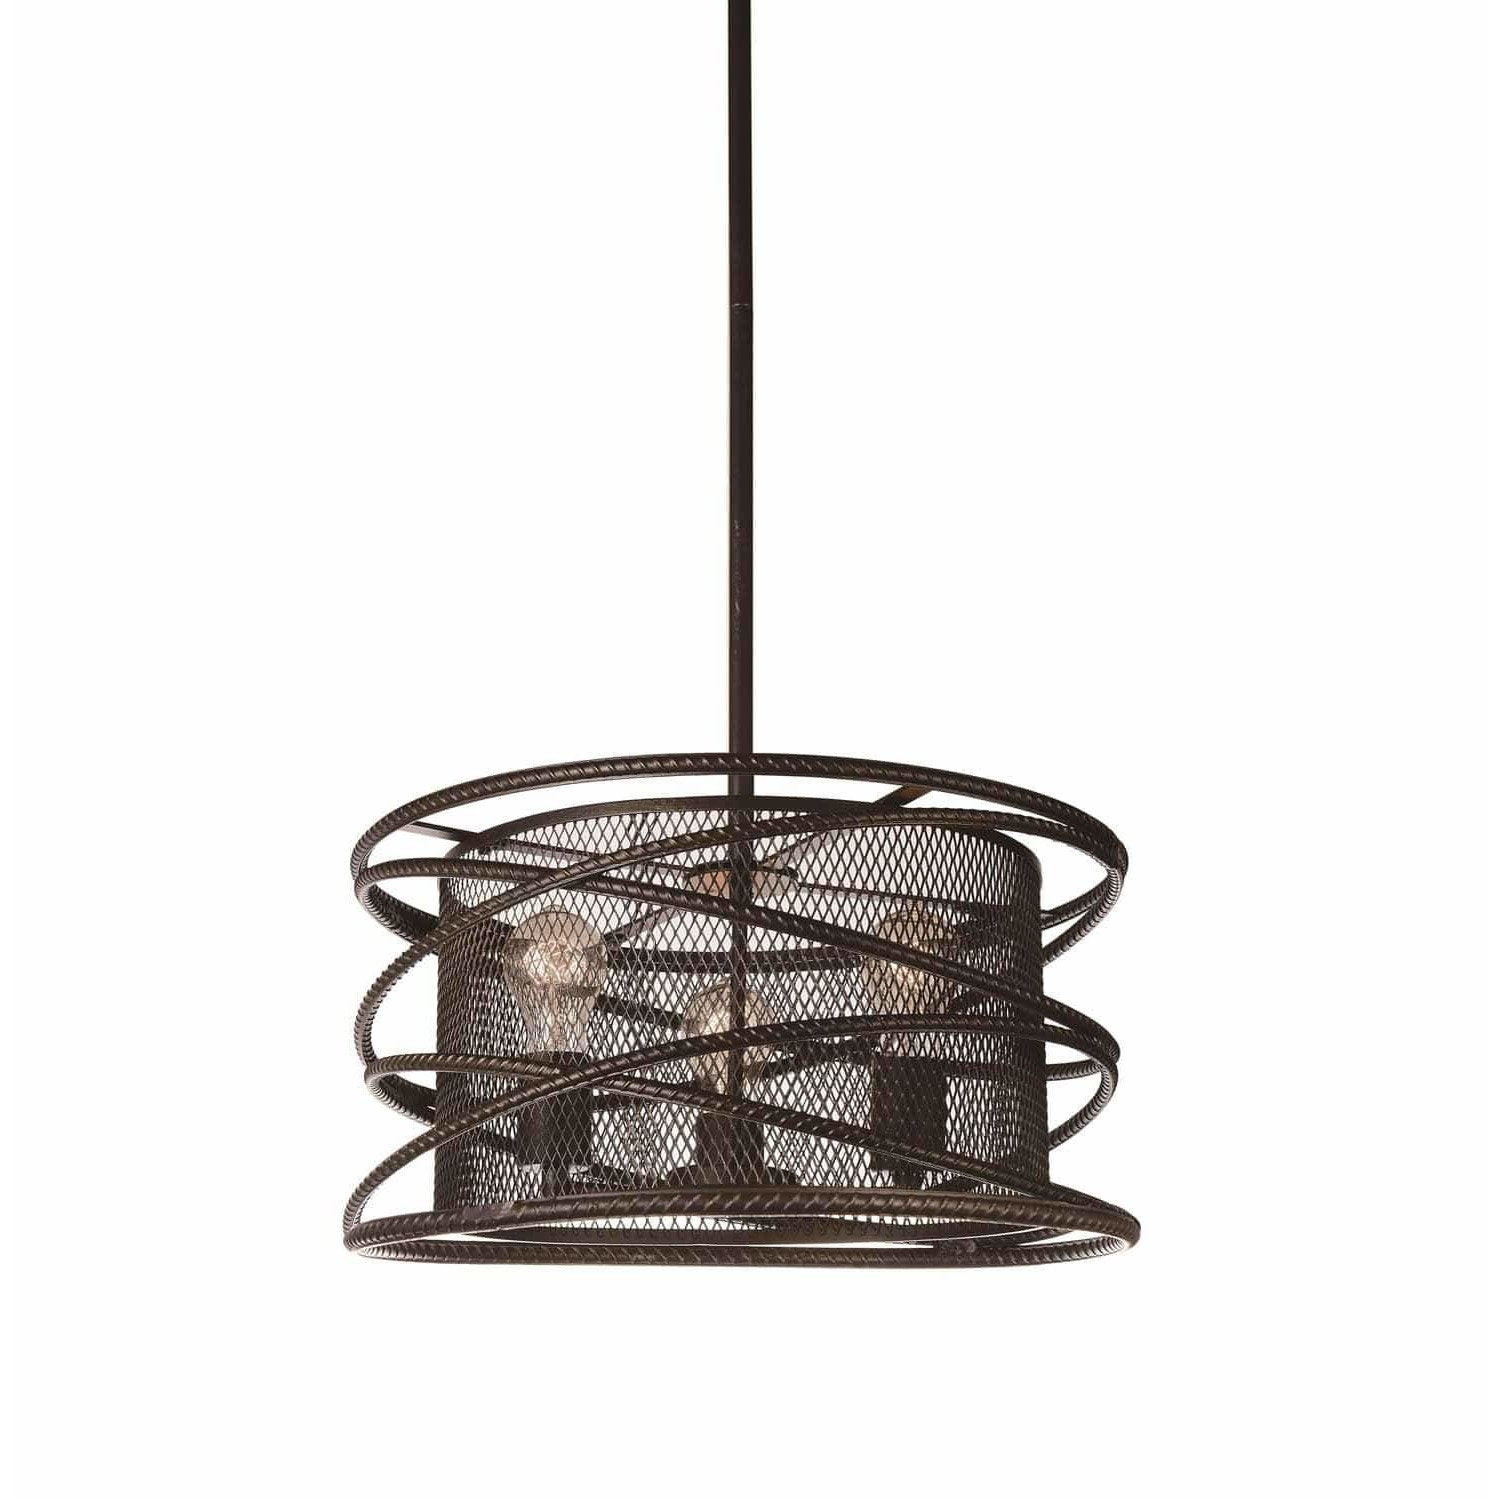 CWI Lighting Chandeliers Brown Darya 3 Light Up Chandelier with Brown finish by CWI Lighting 9700P18-3-197